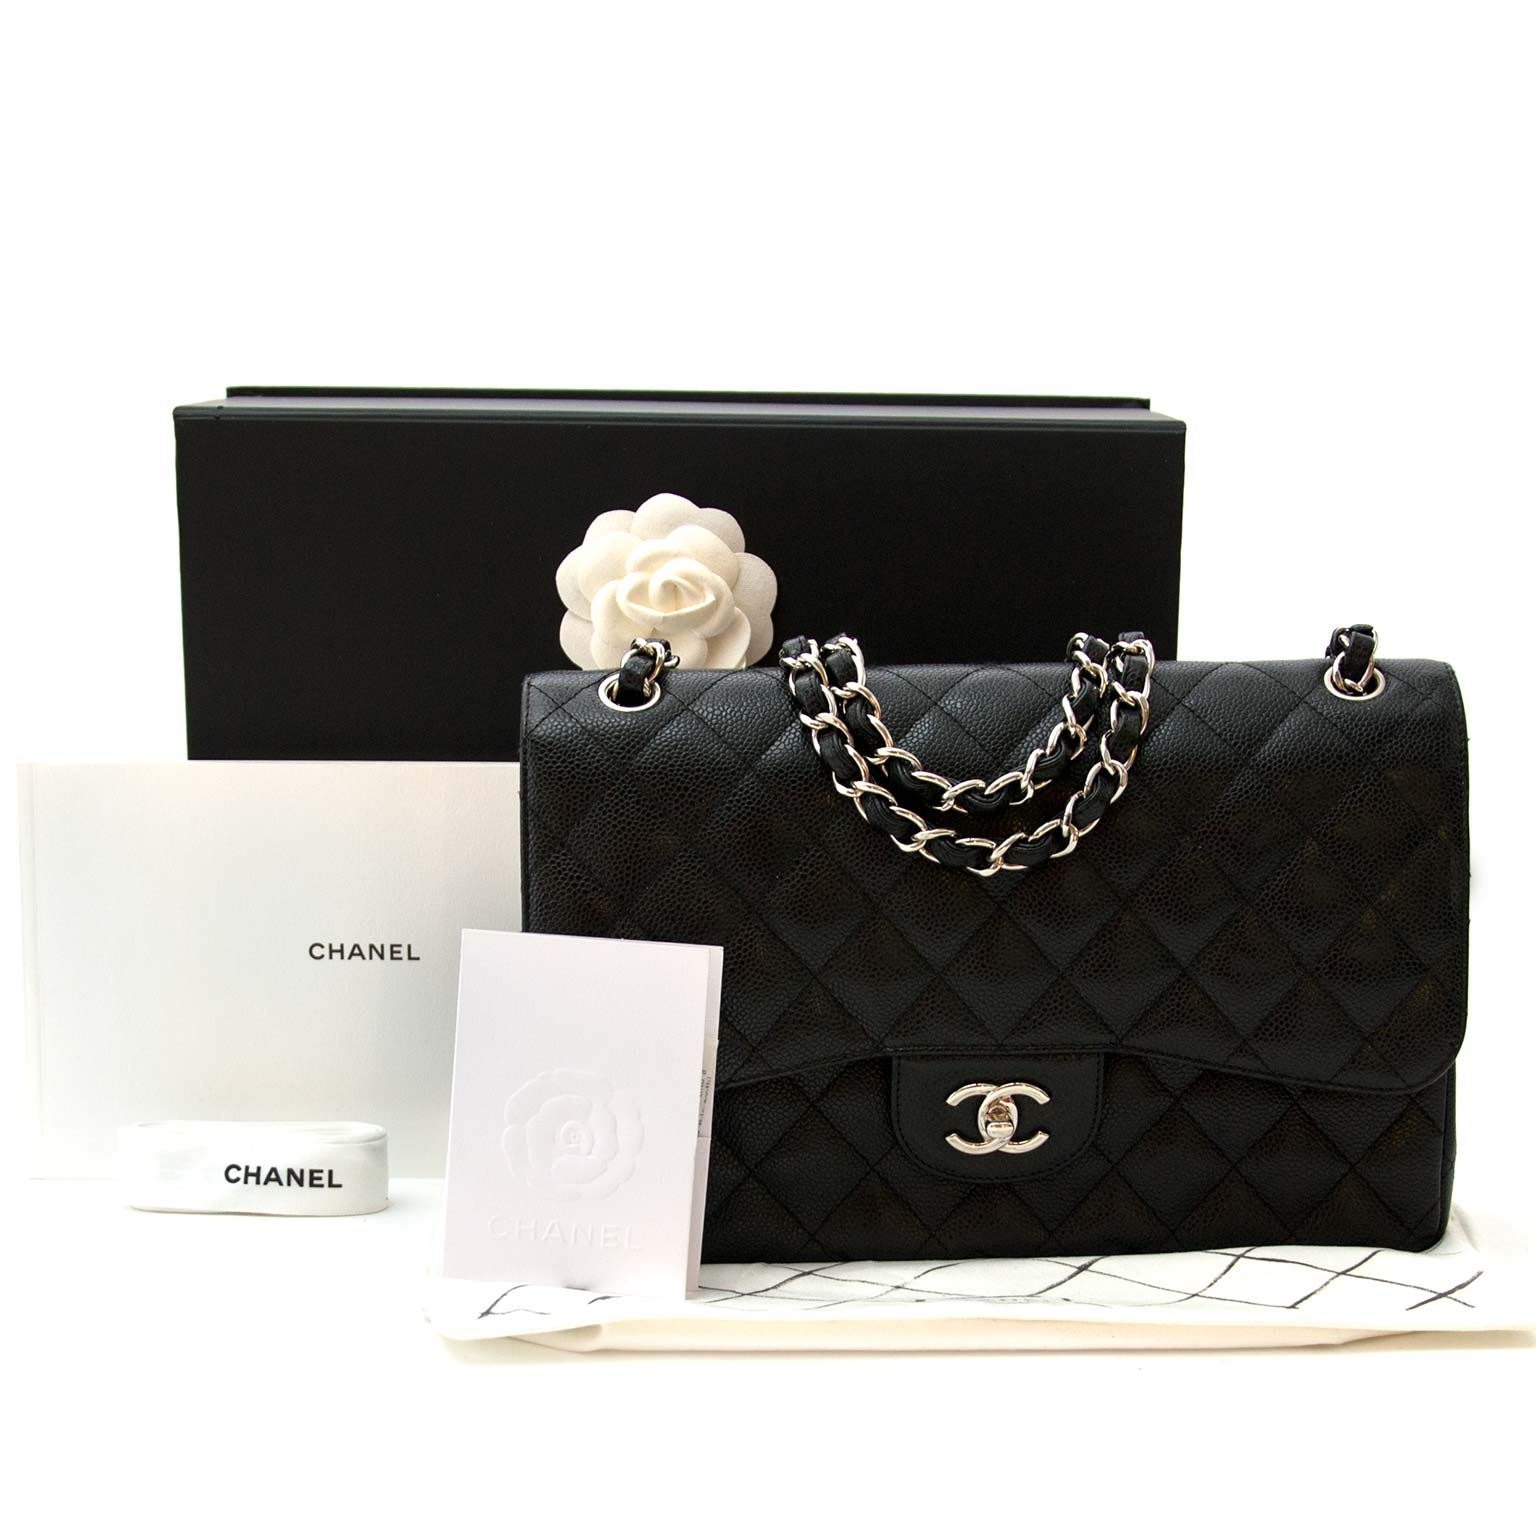 ead4caefb57 Chanel Classic Flap Bag Jumbo Black Caviar Leather for sale online at  Labellov secondhand luxury Koop en verkoop uw authentieke designer  handtassen aan de ...